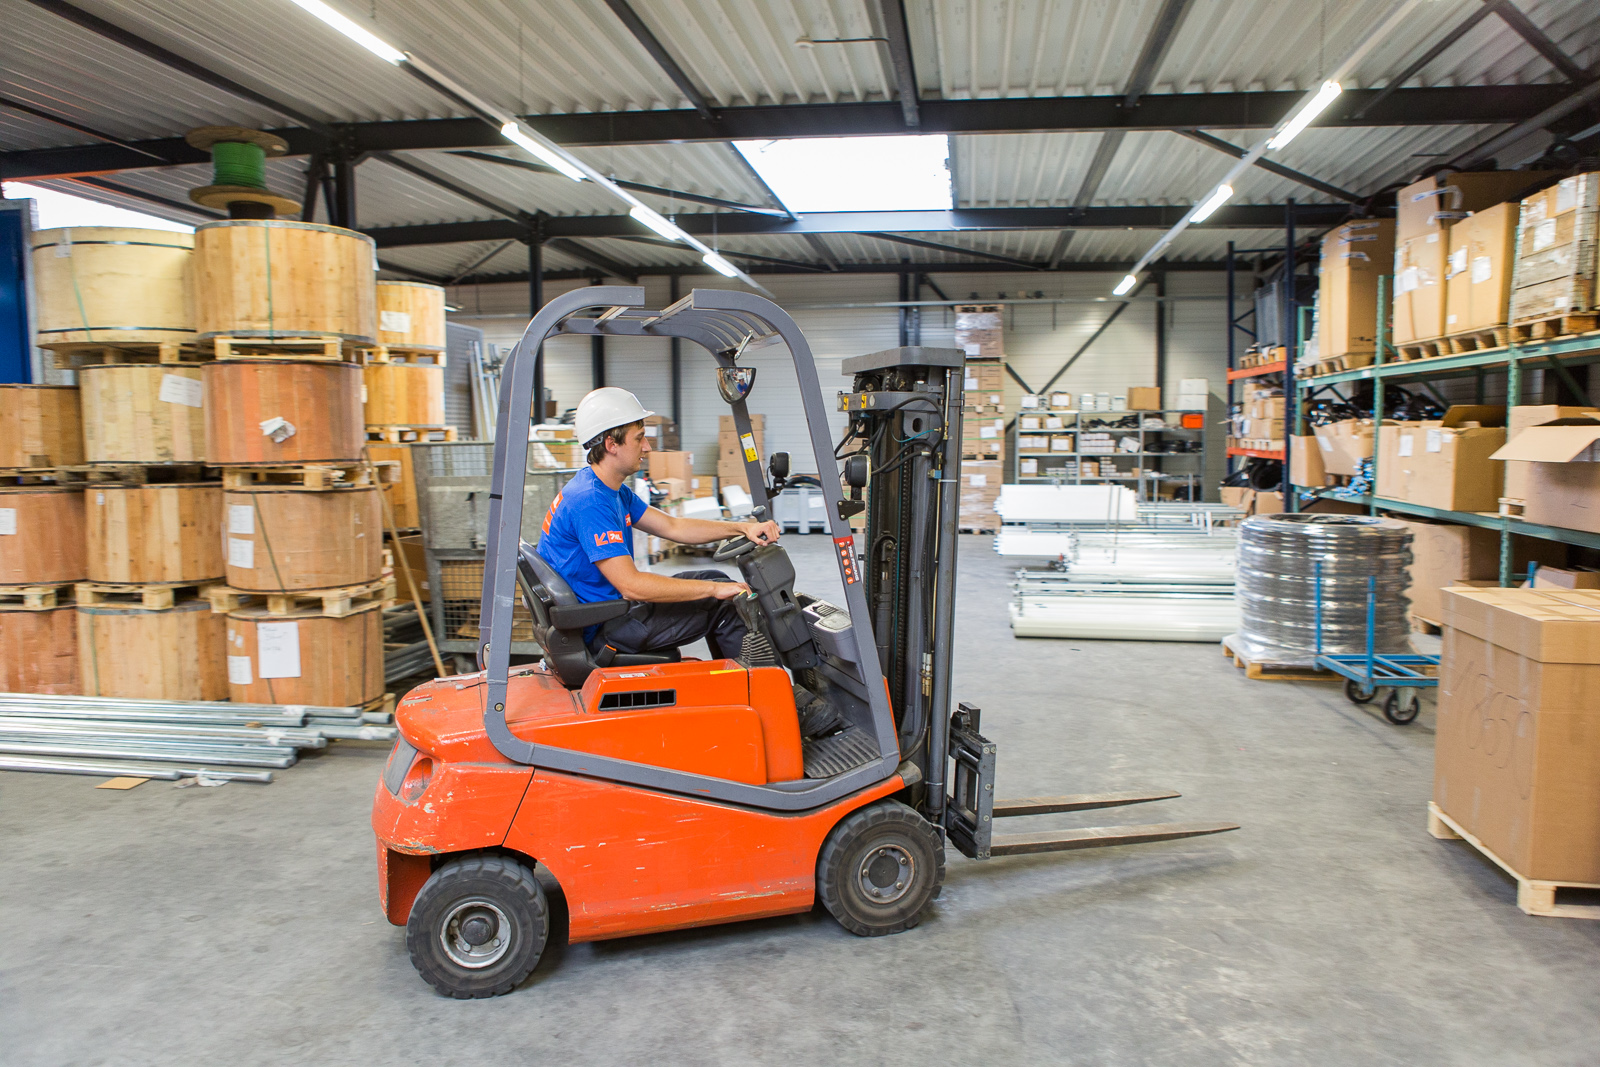 Ever wanted to drive a forklift?